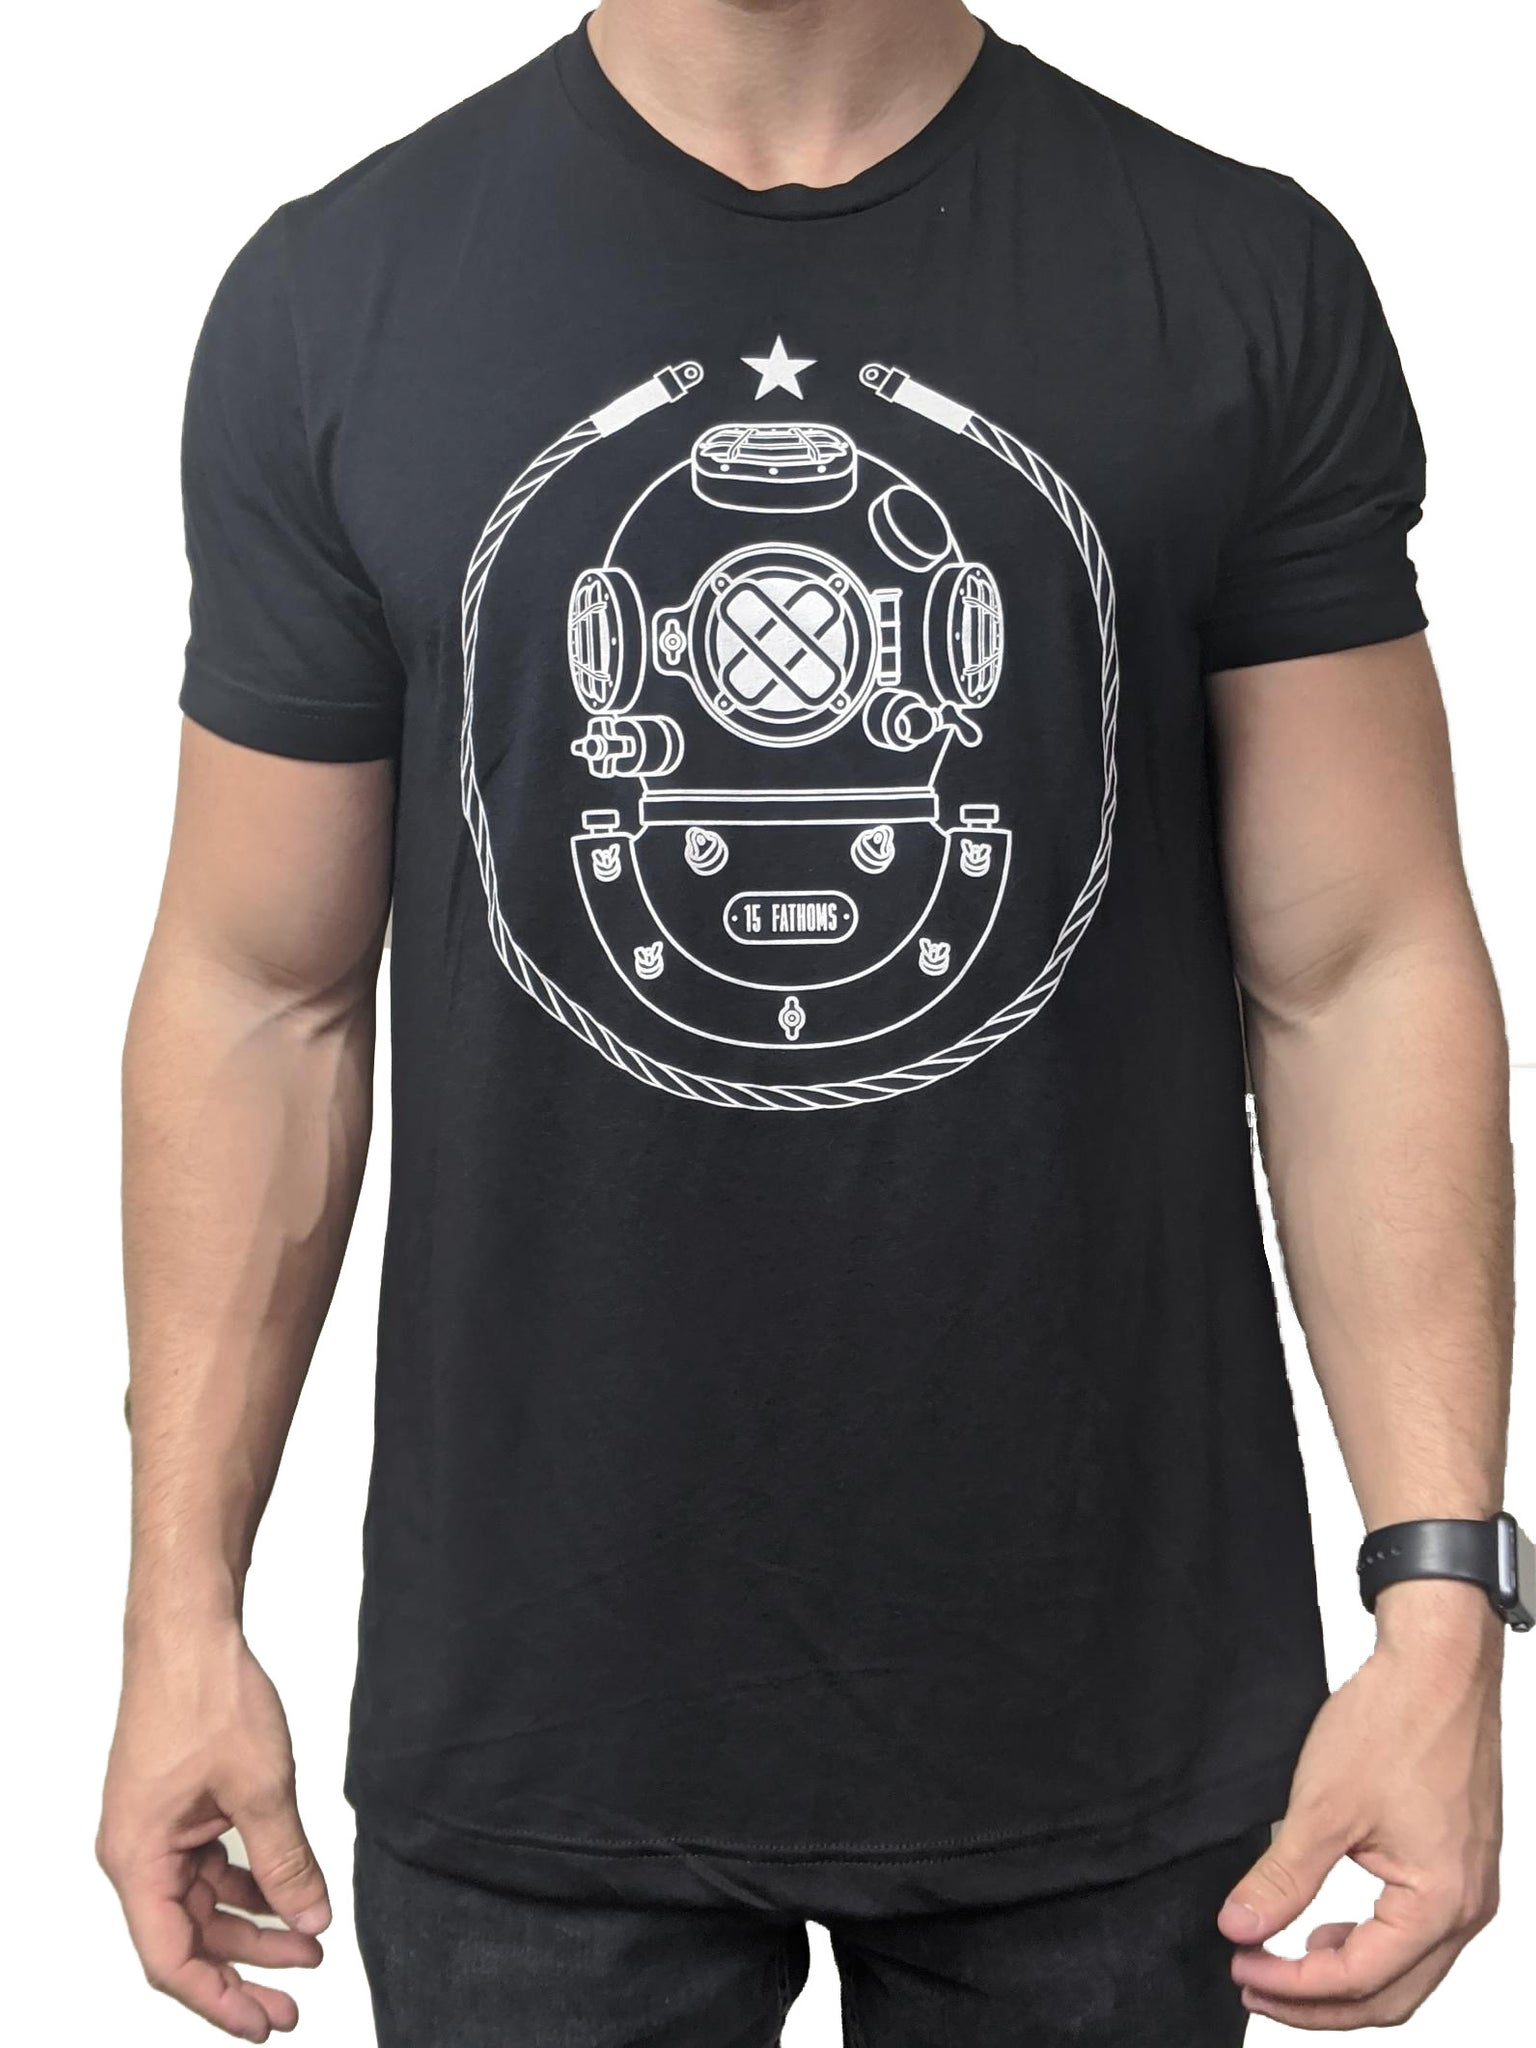 Iconic MK-5 T-Shirt - charcoal